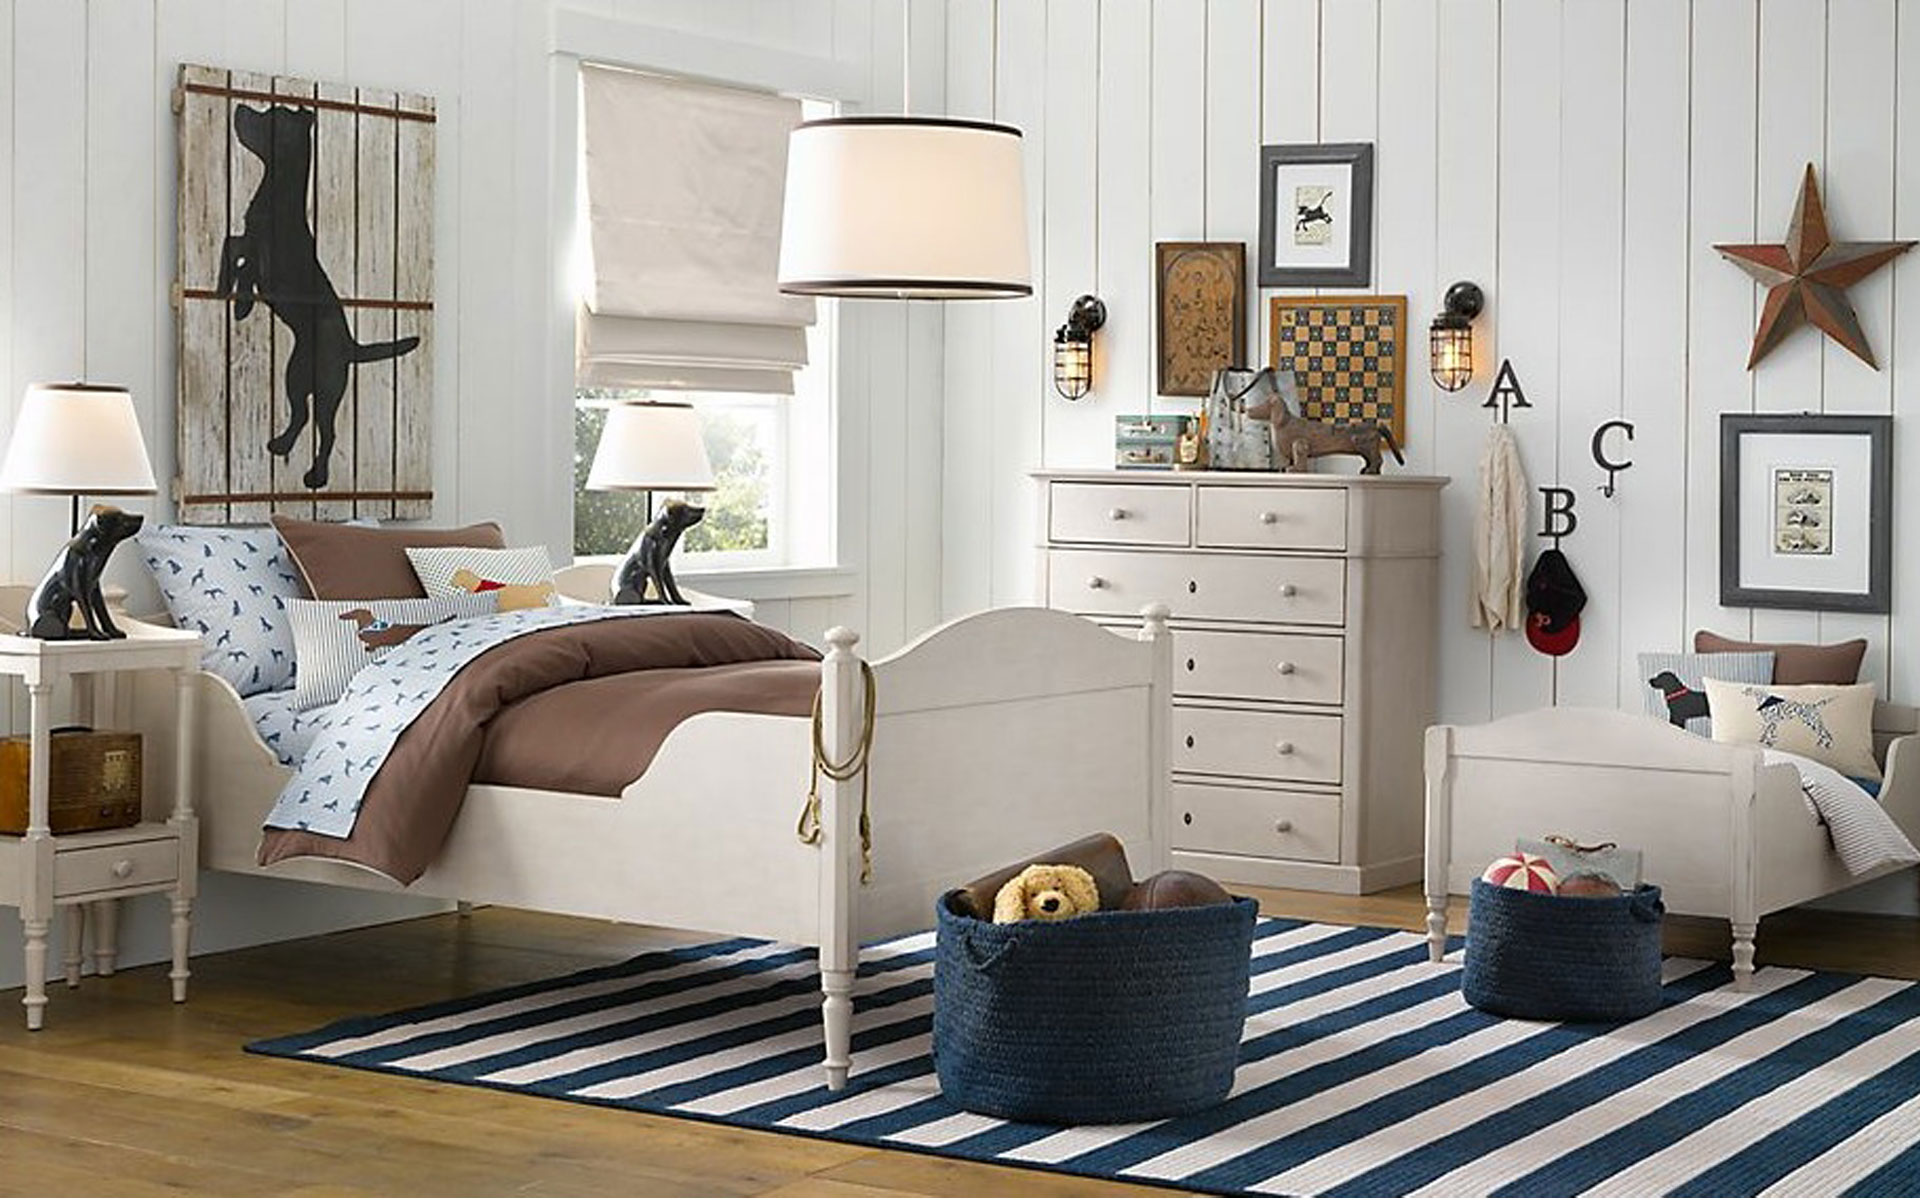 Kids room with the best of coastal interior and vintage furniture